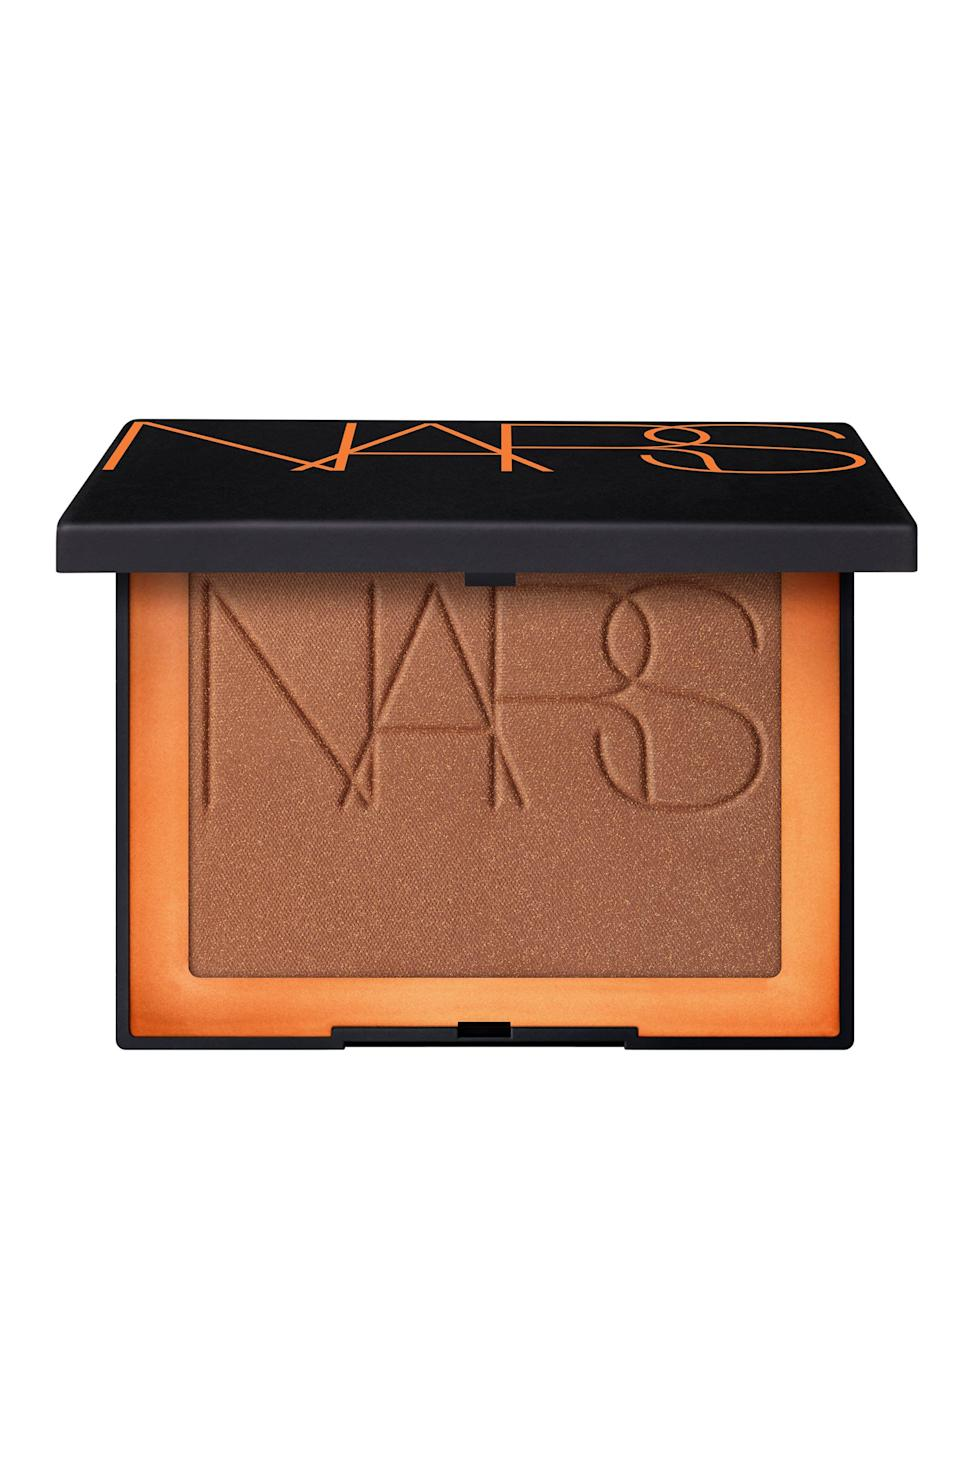 """<p><strong>NARS</strong></p><p>nordstrom.com</p><p><strong>$38.00</strong></p><p><a href=""""https://go.redirectingat.com?id=74968X1596630&url=https%3A%2F%2Fwww.nordstrom.com%2Fs%2Fnars-bronzing-powder%2F5577018&sref=https%3A%2F%2Fwww.goodhousekeeping.com%2Fbeauty-products%2Fg36020083%2Fbest-bronzer-for-dark-skin%2F"""" rel=""""nofollow noopener"""" target=""""_blank"""" data-ylk=""""slk:Shop Now"""" class=""""link rapid-noclick-resp"""">Shop Now</a></p><p>This finely-milled powder from Nars is a favorite among celebrity makeup artists and beauty editors alike. It provides a smooth application, and the <strong>slight golden shimmer</strong> gives your face definition and a warm glow. This shade is great for both olive and dark skin tones. </p>"""